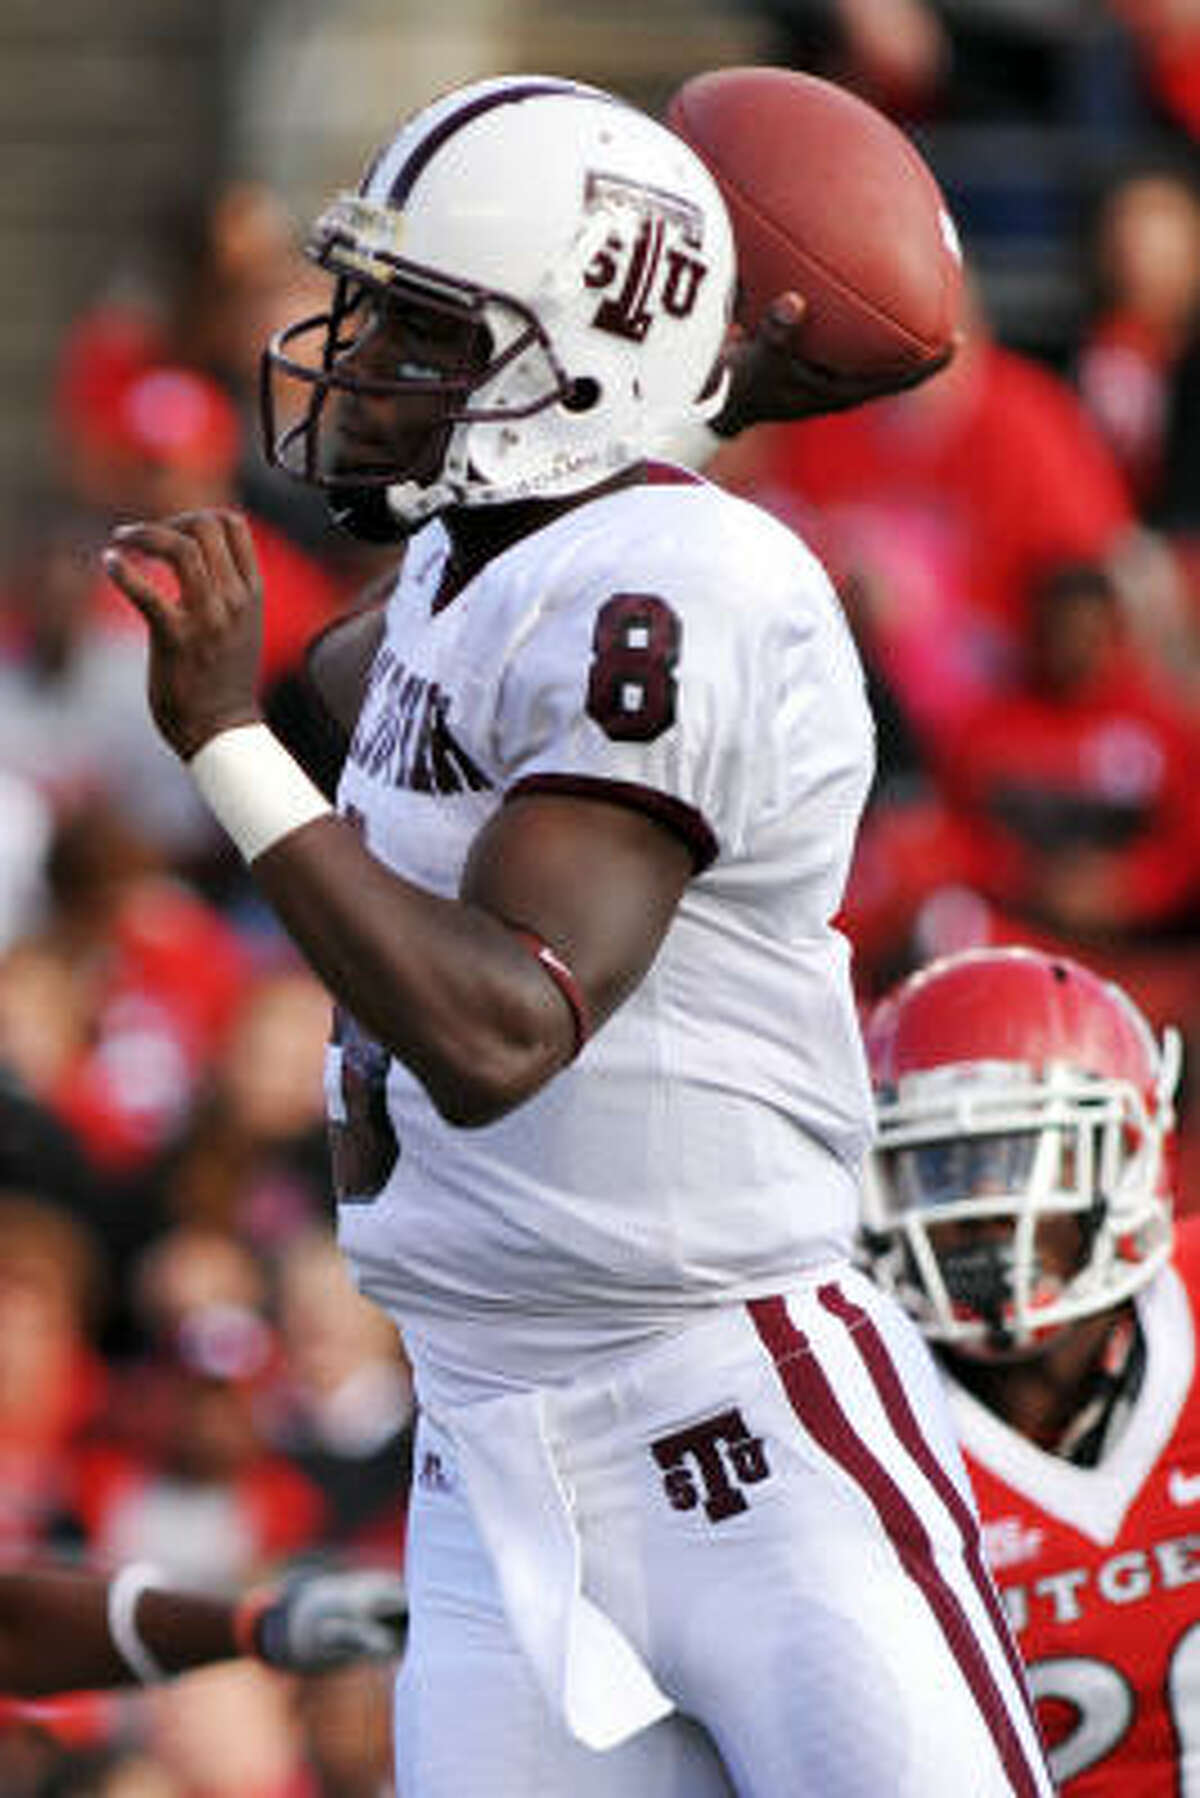 TSU quarterback Arvell Nelson throws a pass during the first half.